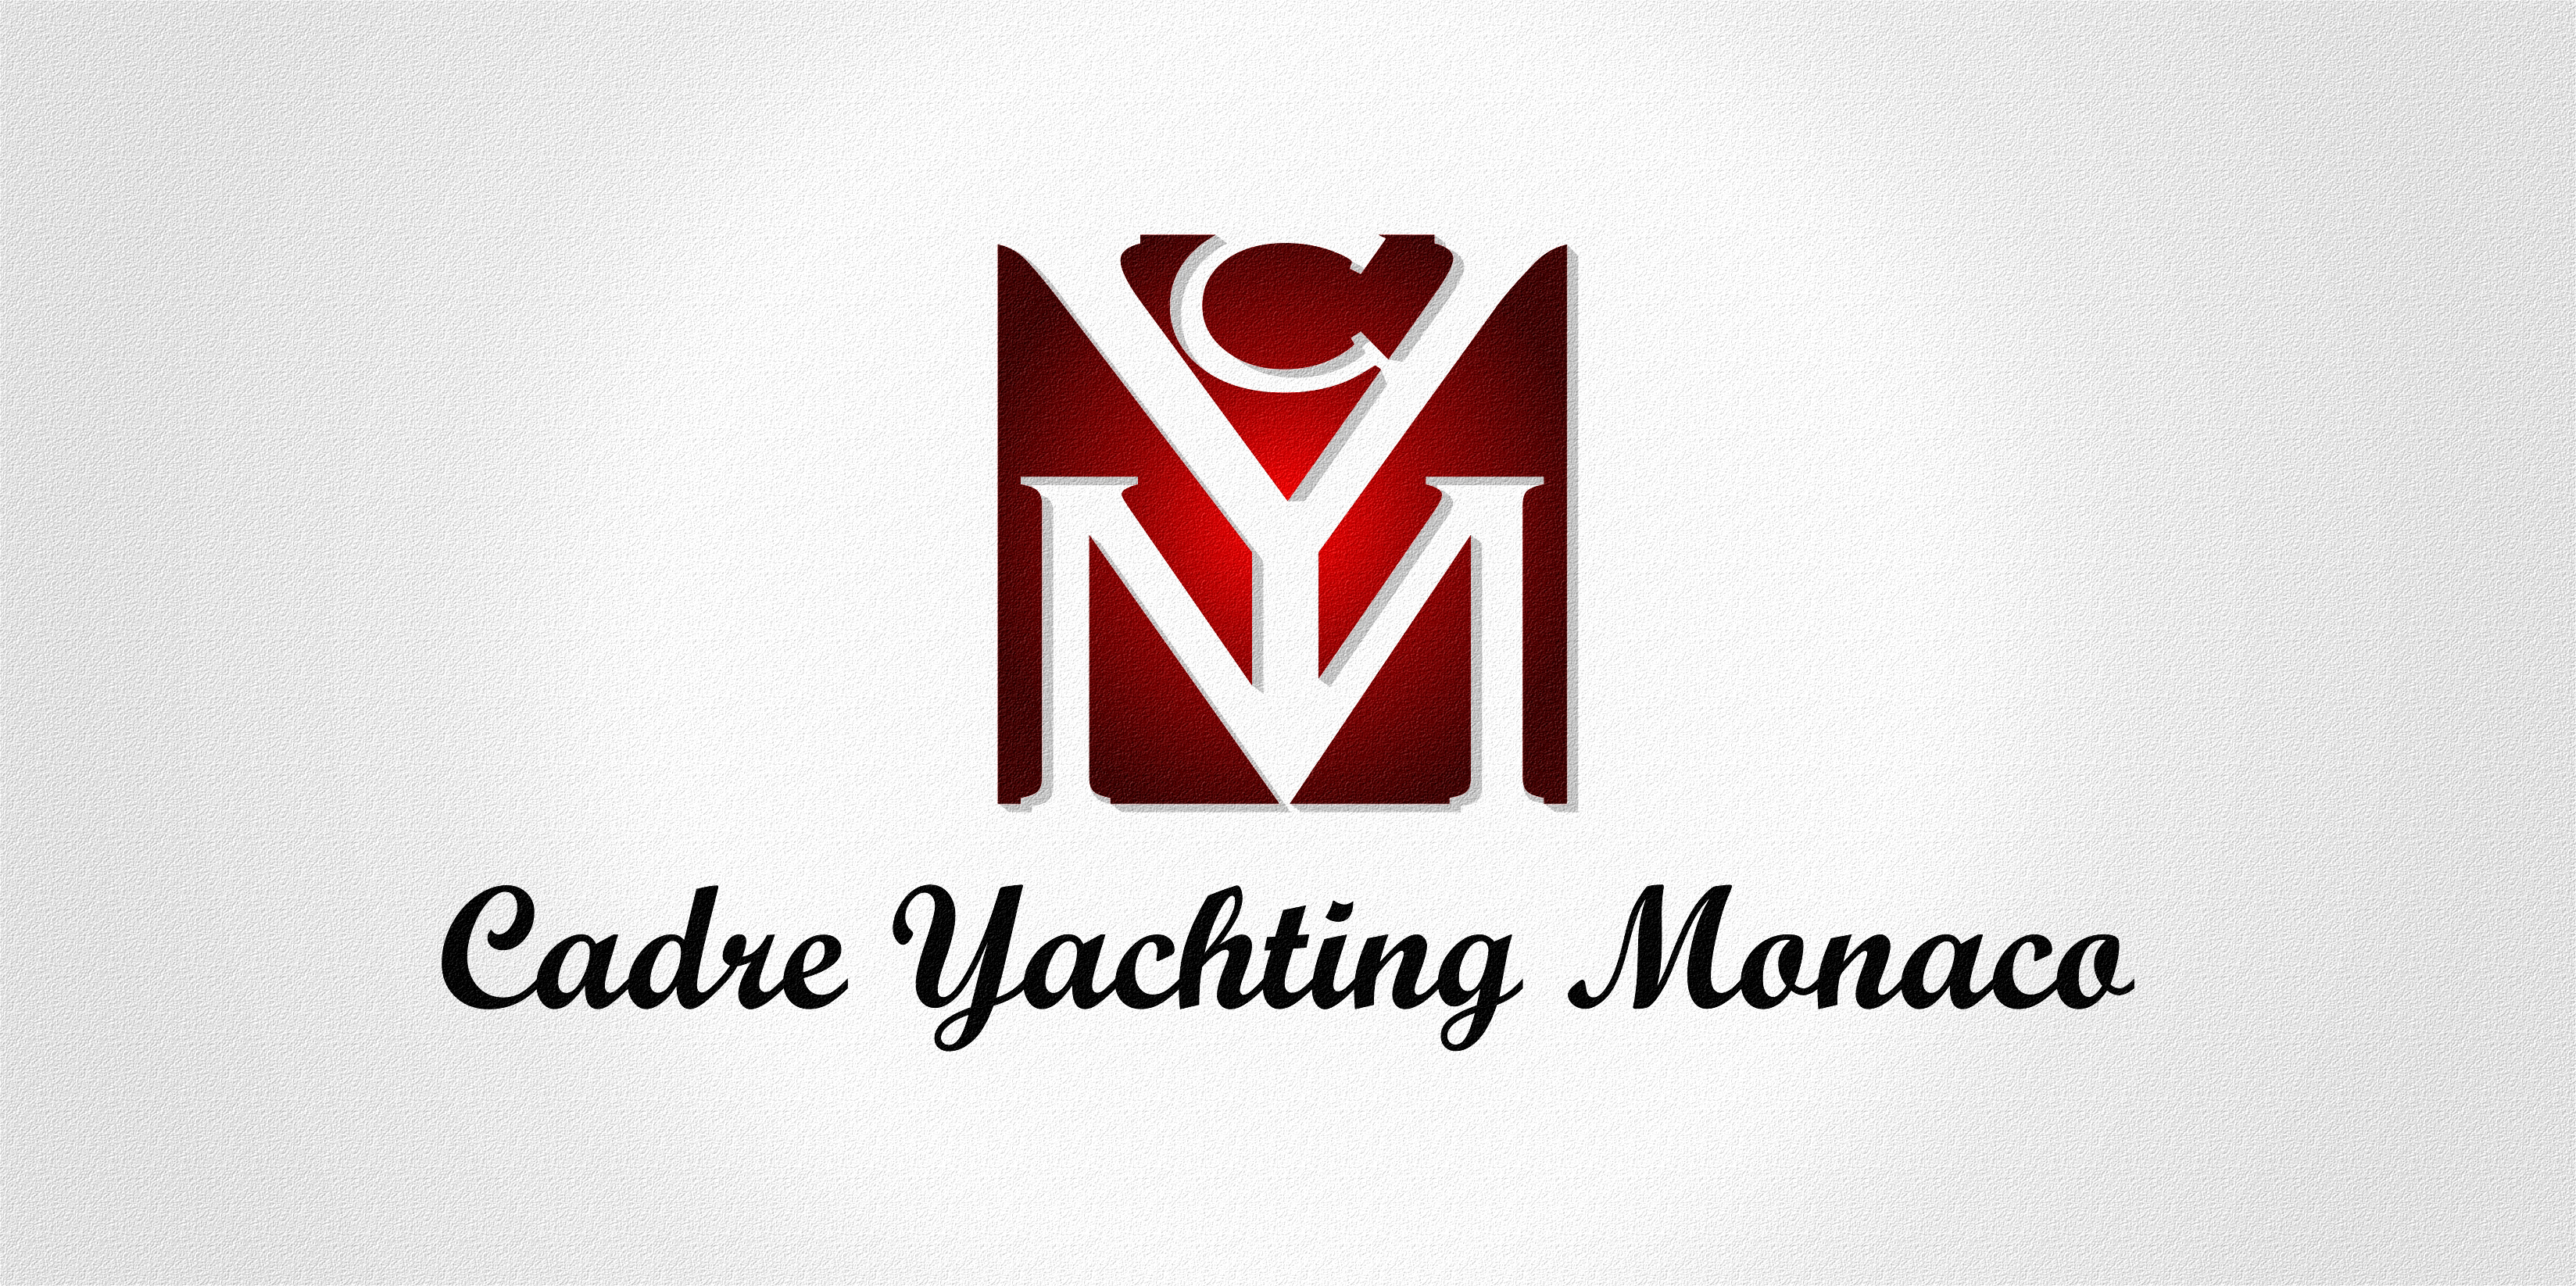 Logo Design by Private User - Entry No. 398 in the Logo Design Contest New Logo Design for Cadre Yachting Monaco.